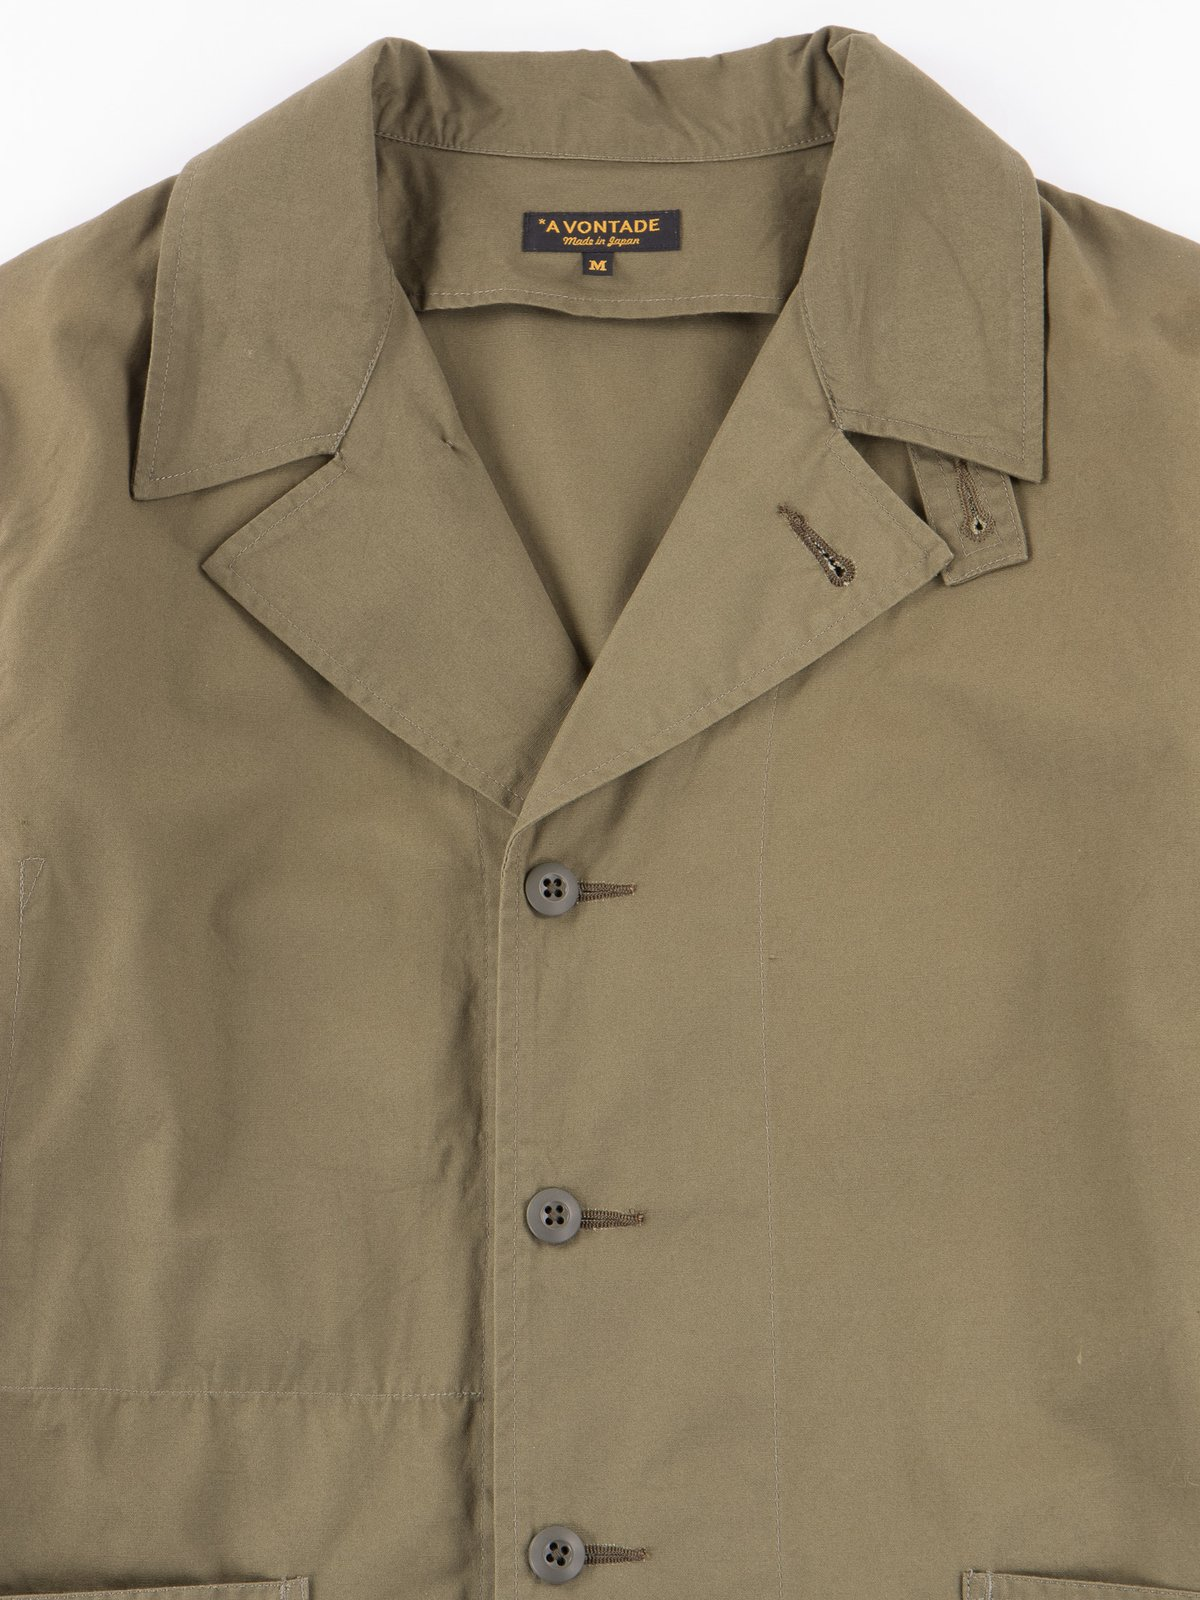 Olive Utility Coverall Jacket - Image 2